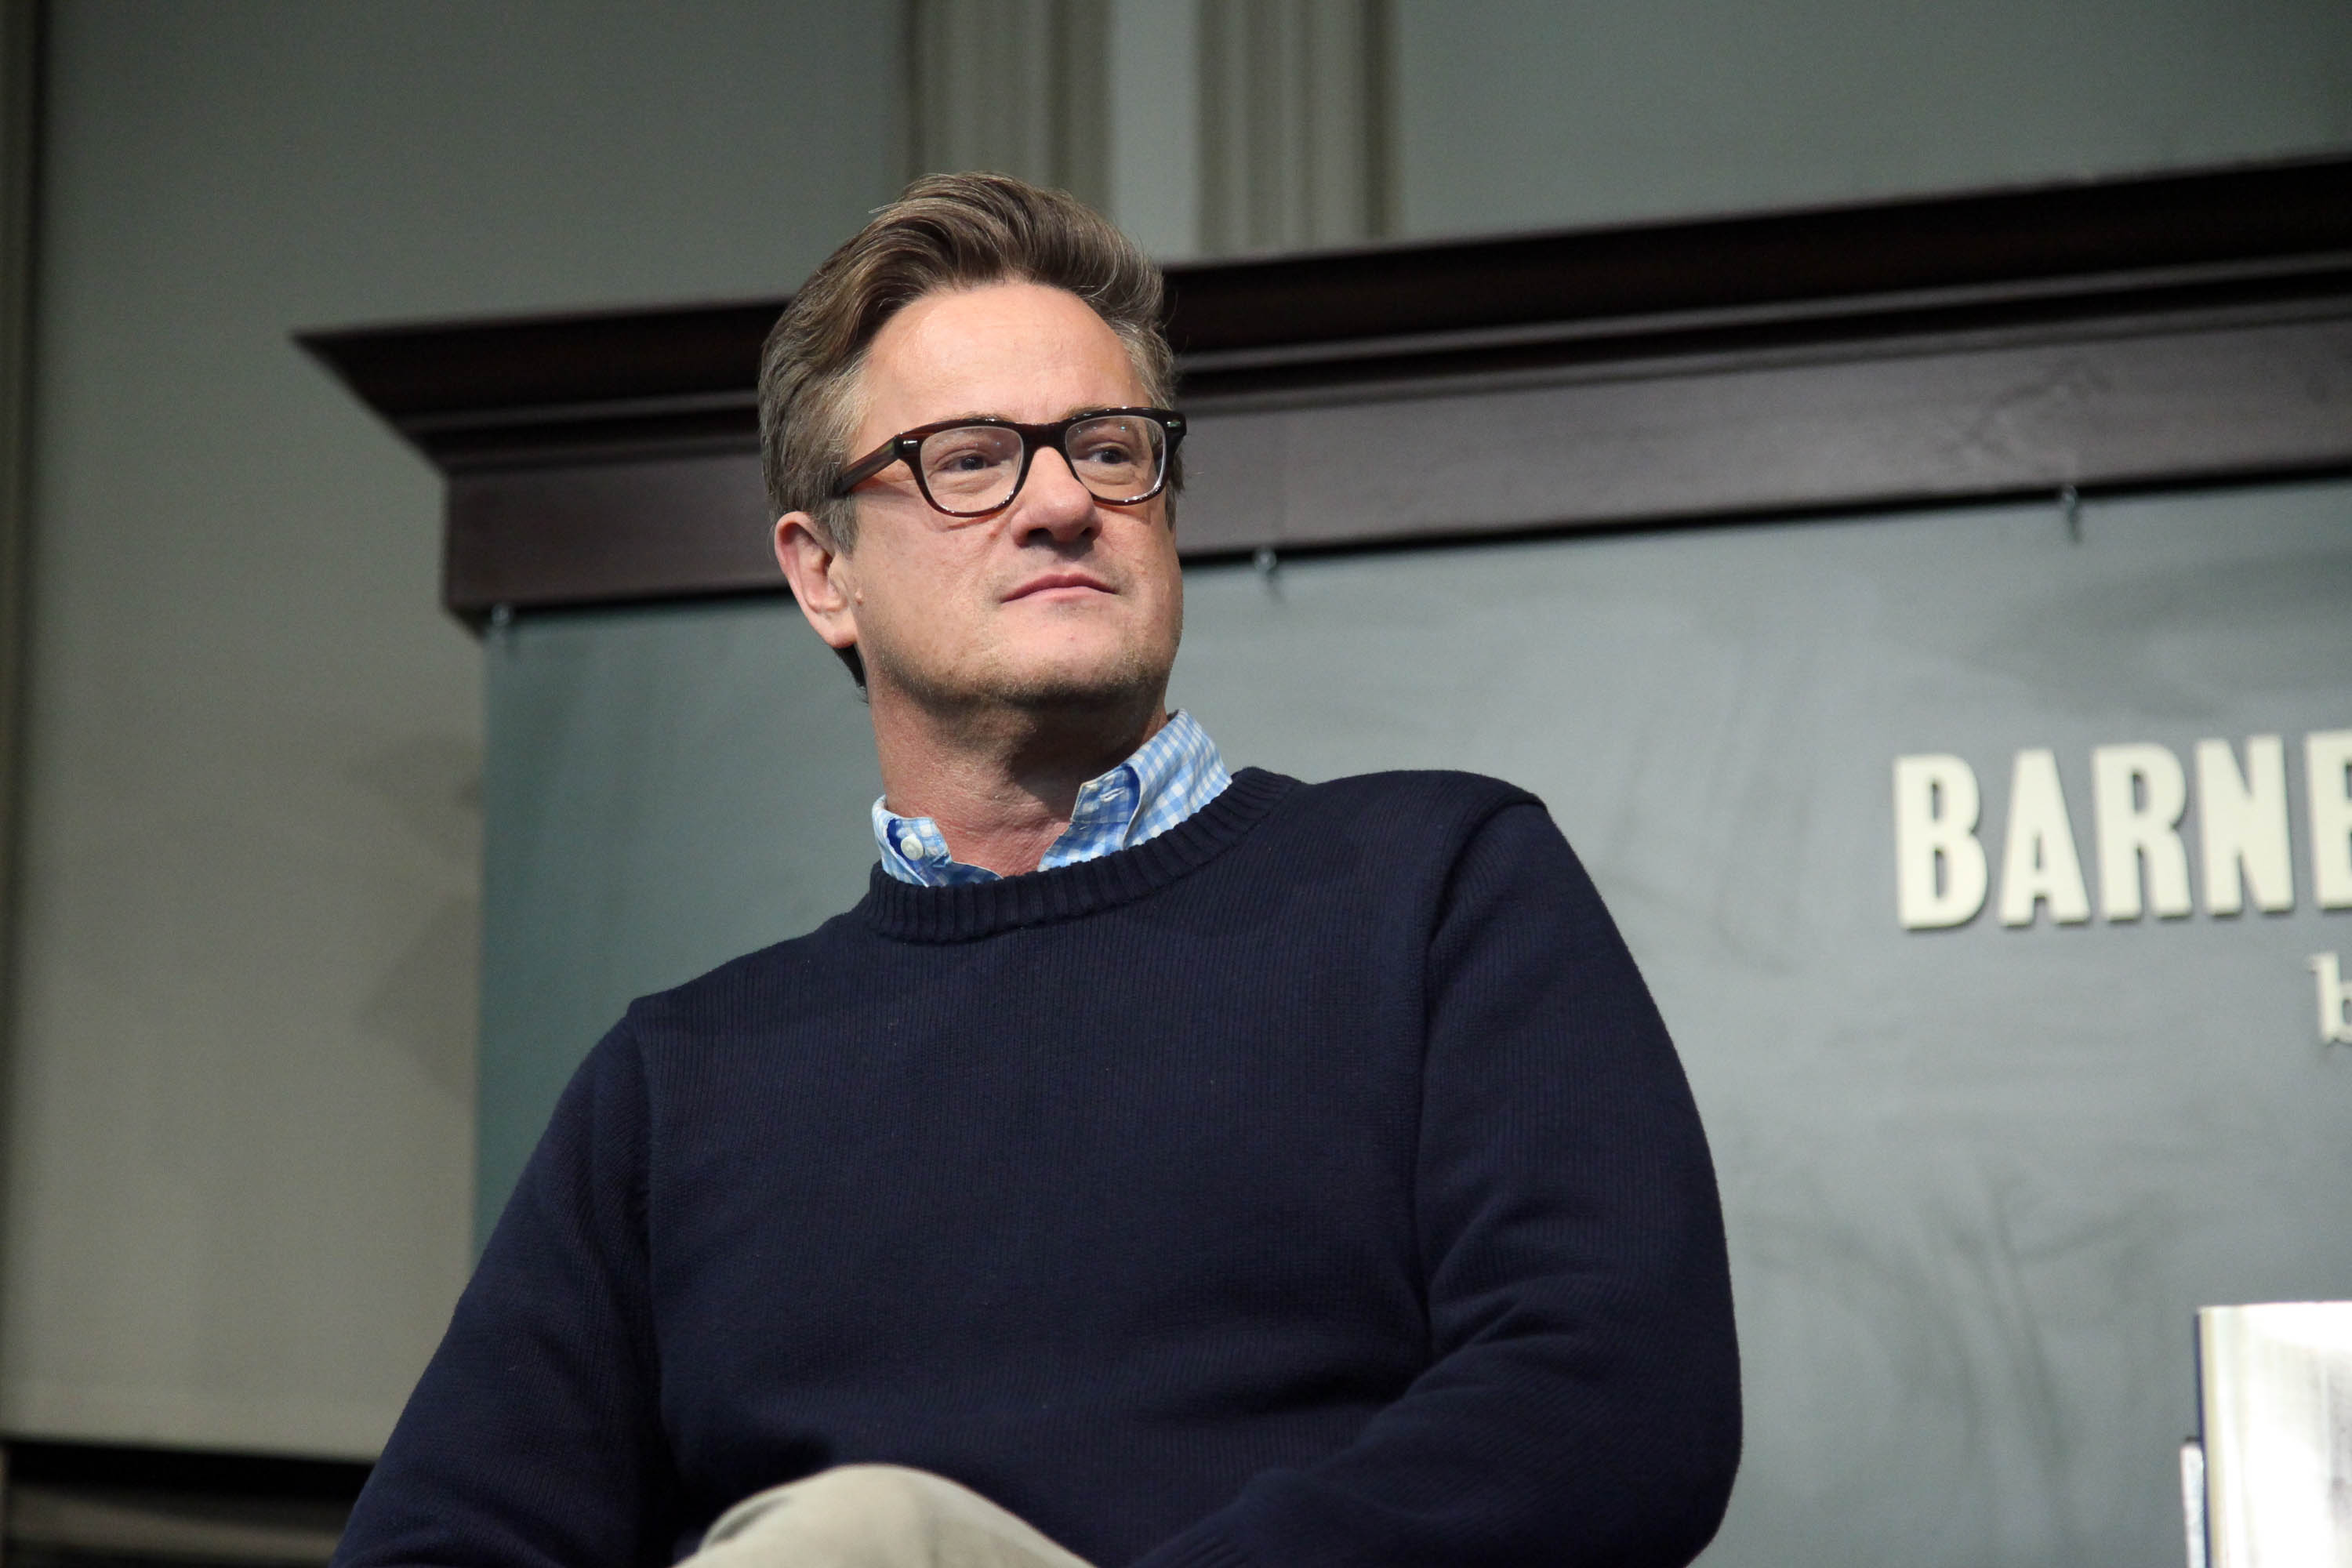 Joe Scarborough attends the  The Right Path: From Ike To Reagan, How Republicans Once Mastered Politics - And Can Again  book event on November 12, 2013 in New York, United States.